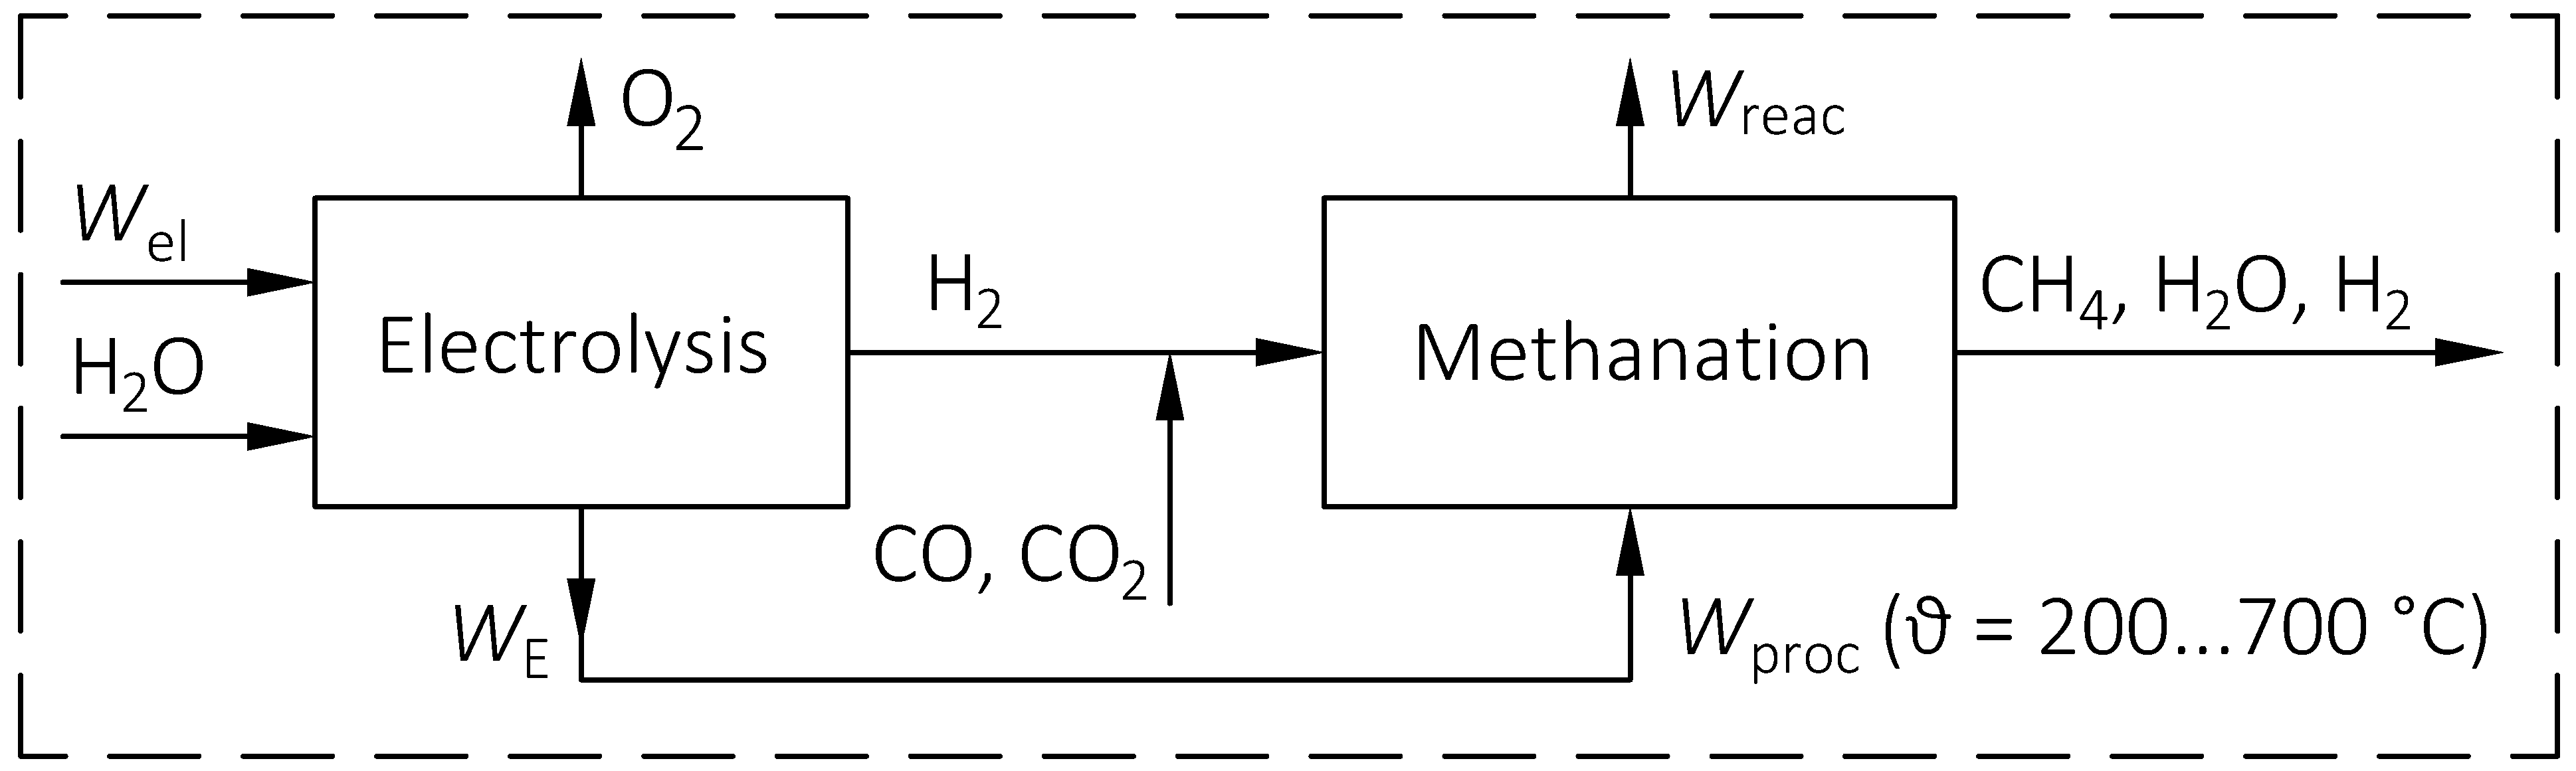 Figure 2: Structure of the overall process of the electrolysis-methanation-cell [1]